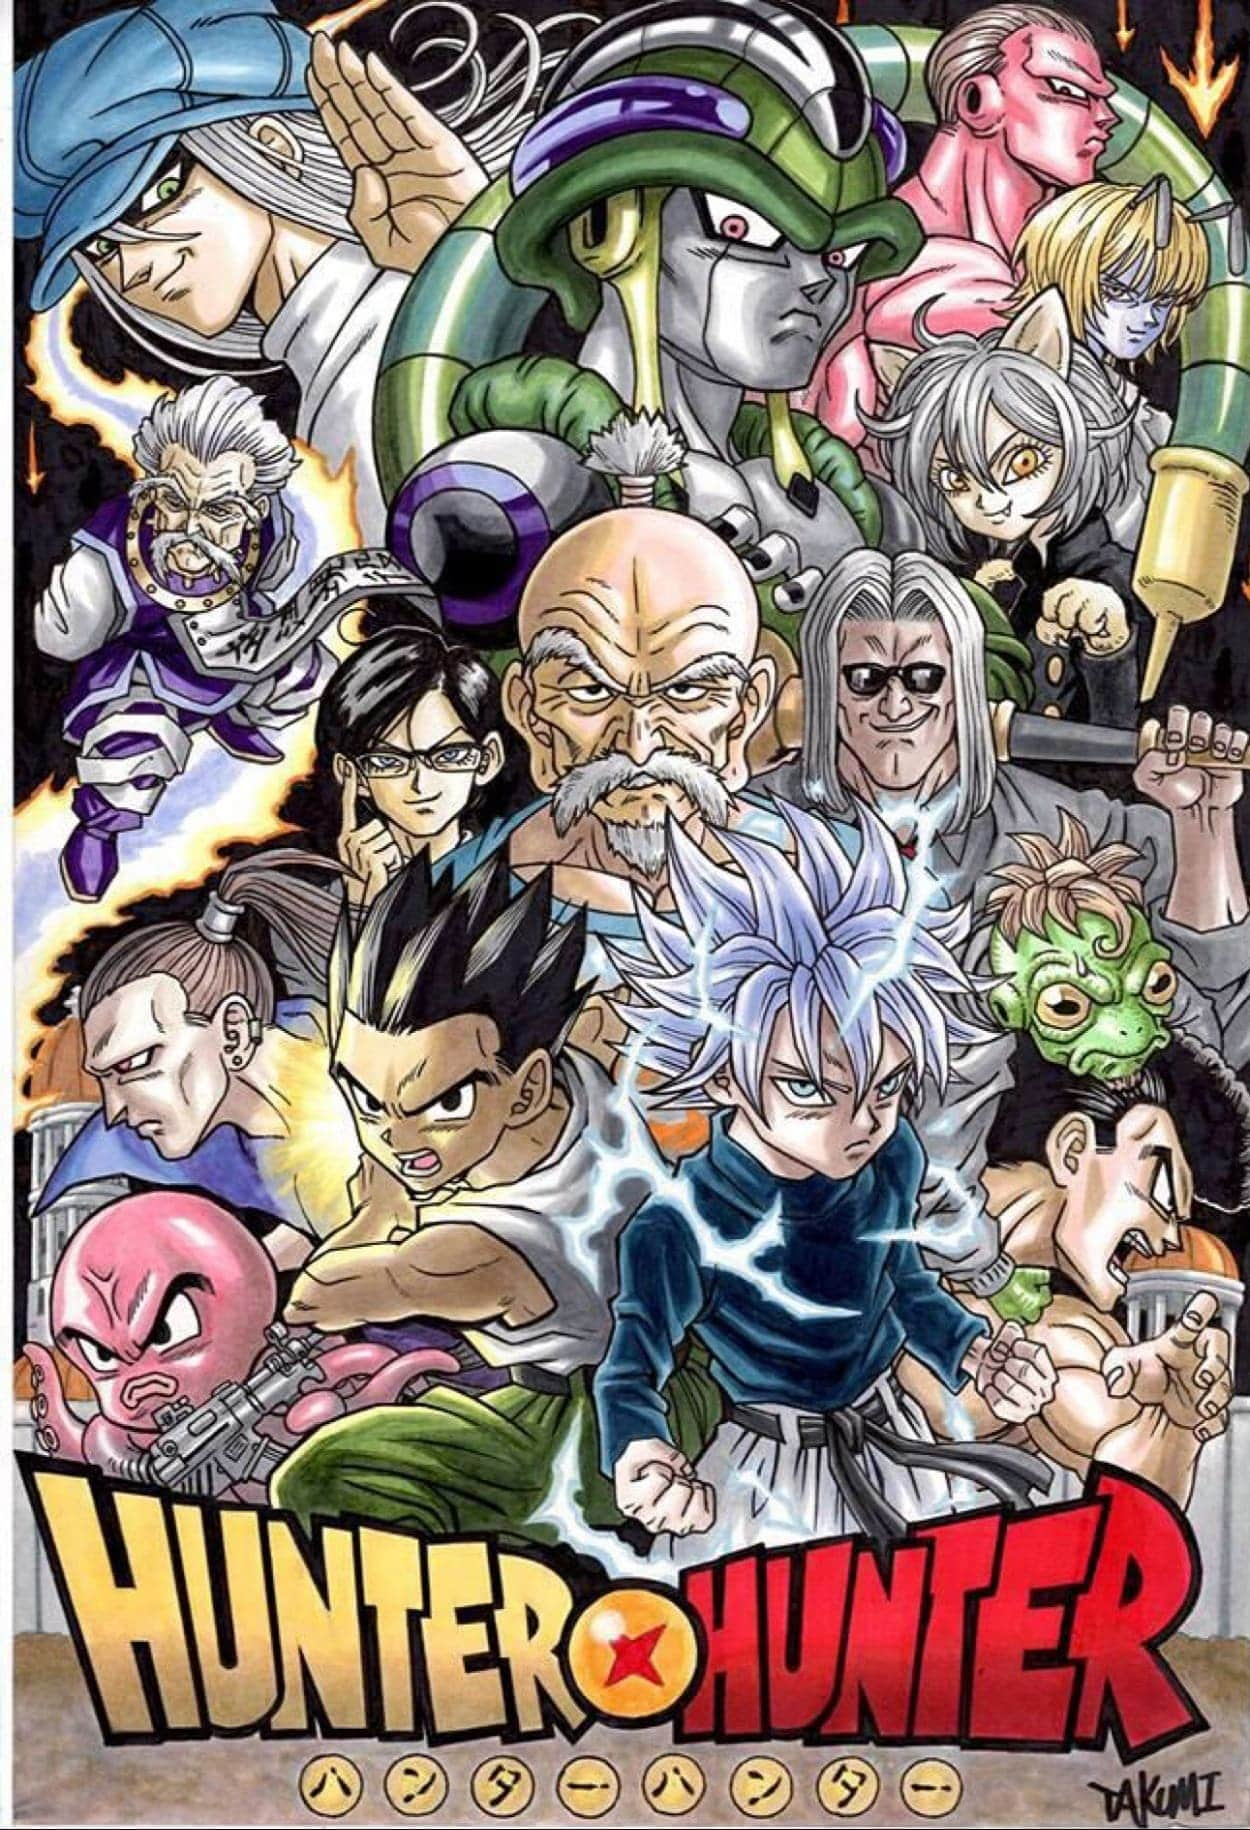 Make your device cooler and more beautiful. Awesome Hunter X Hunter Wallpaper 4K Android Images